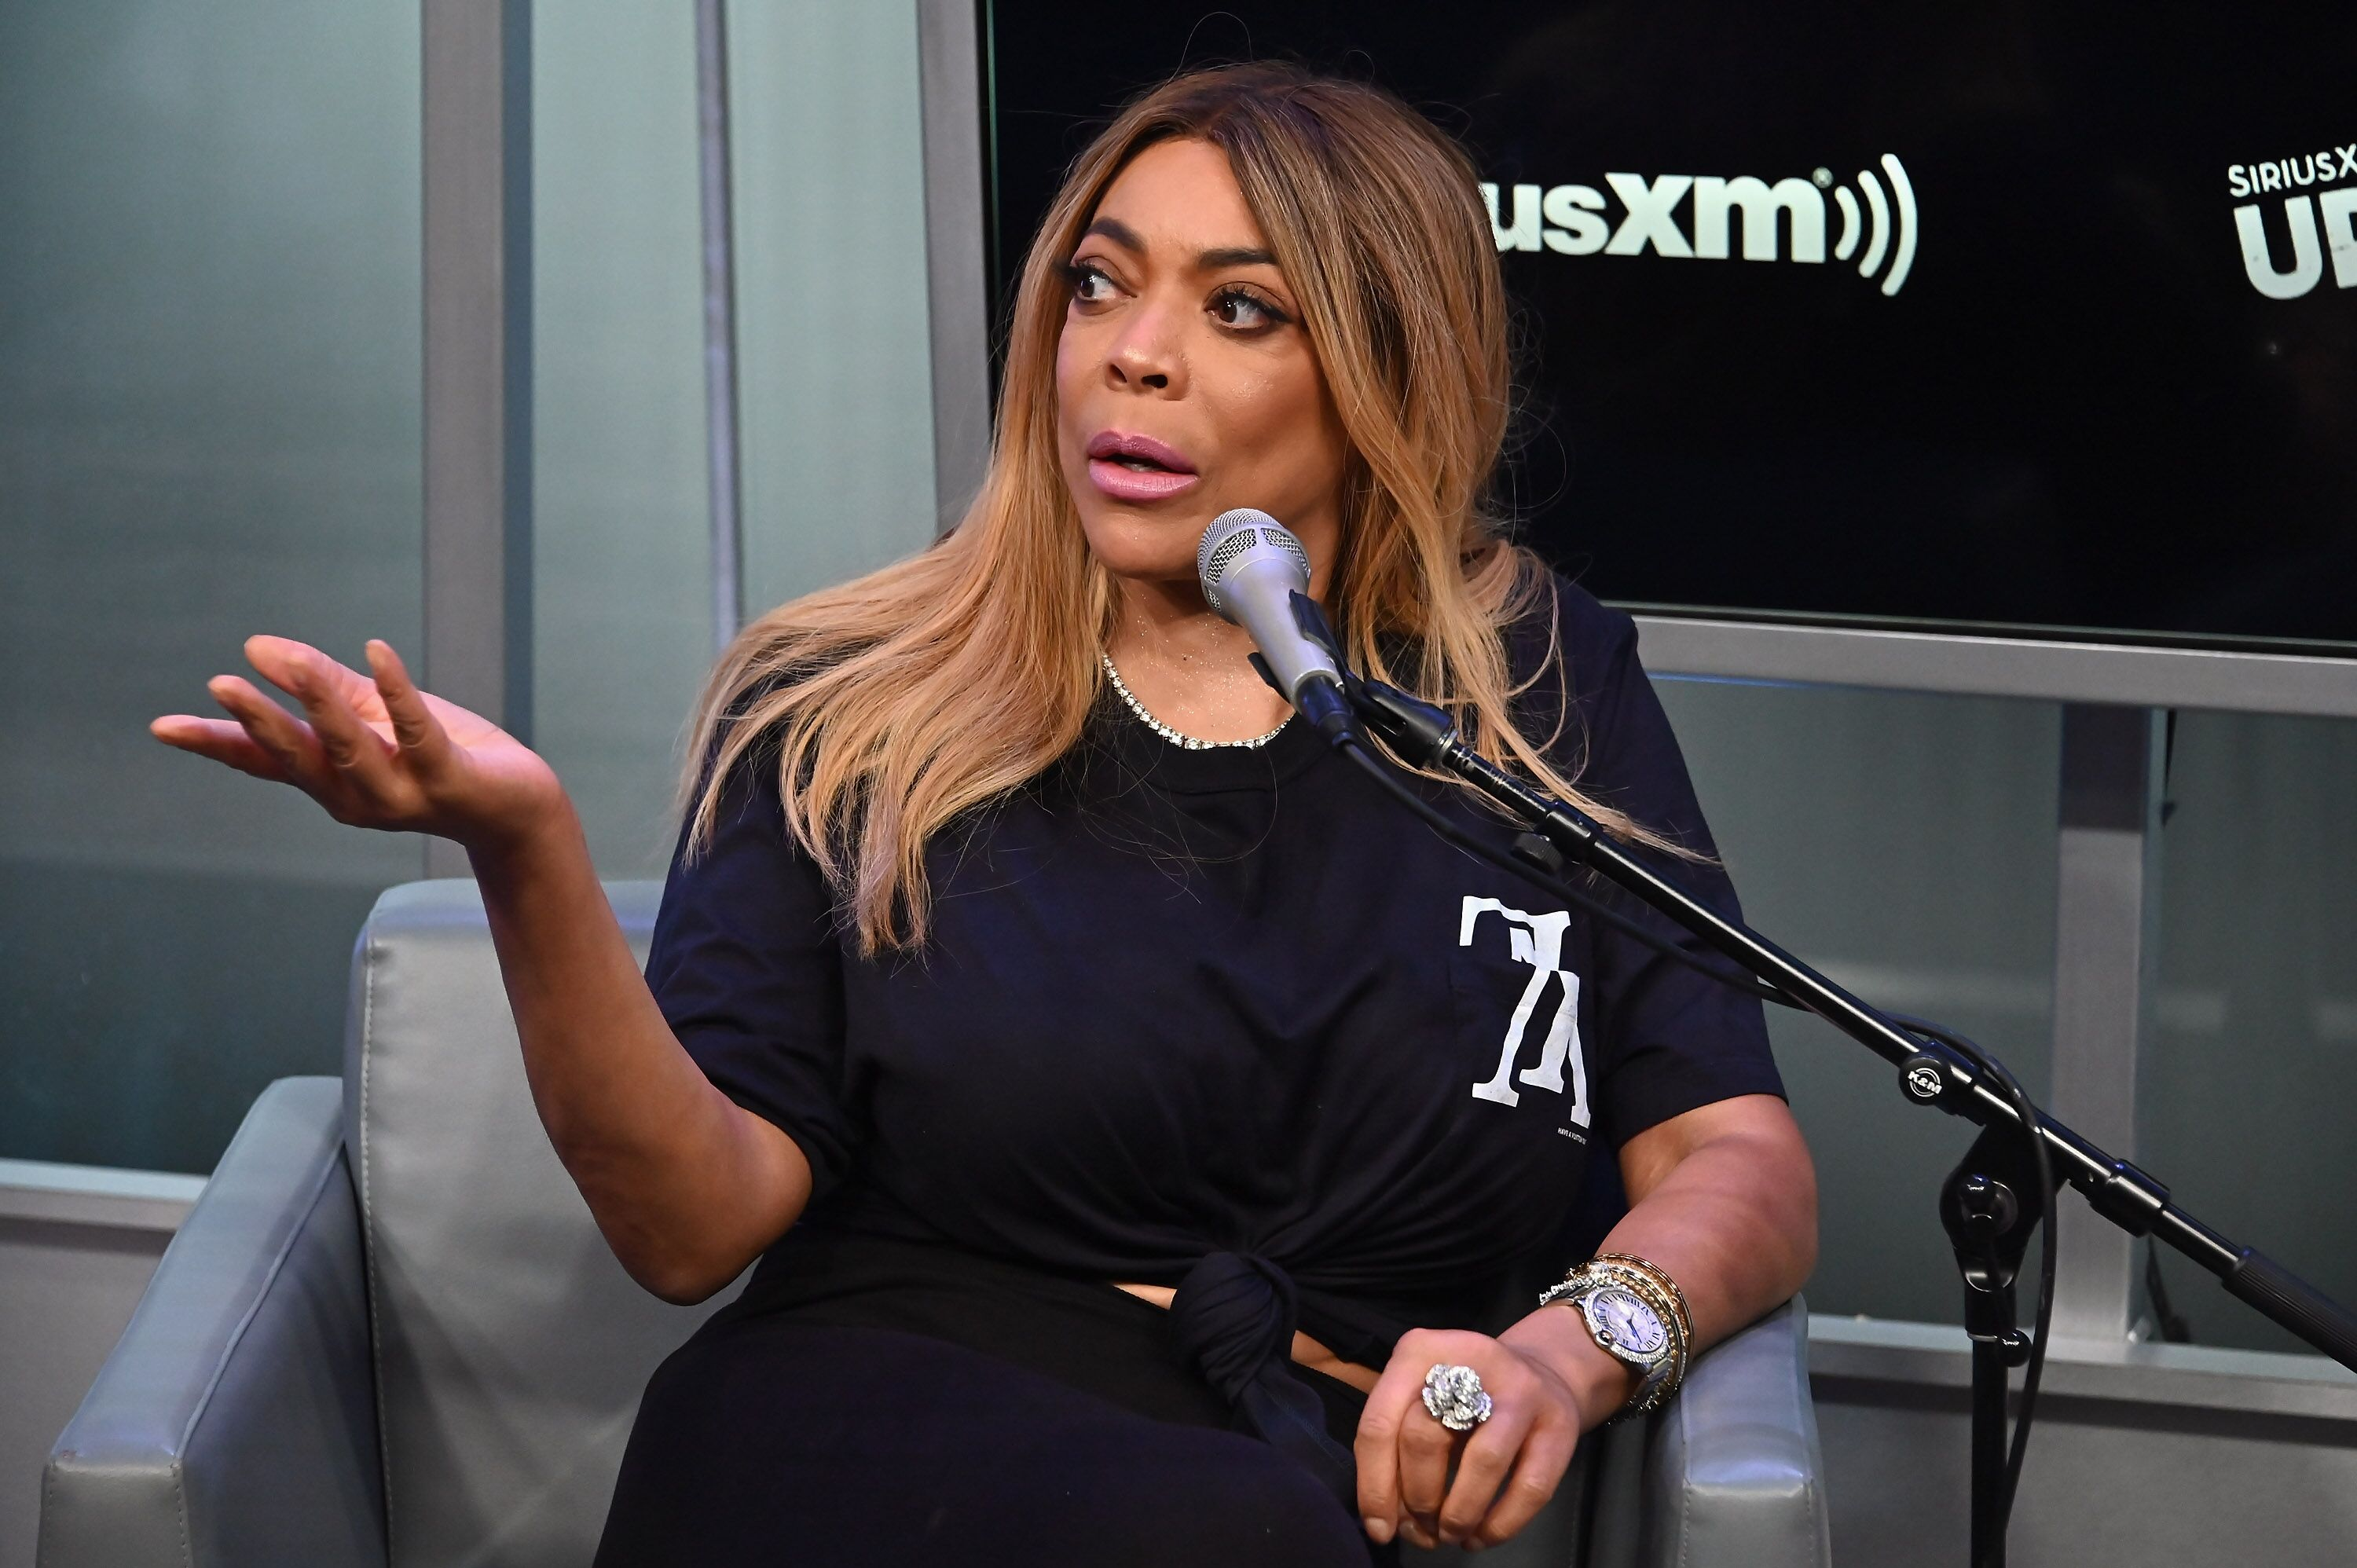 Wendy Williams at SiriusXM Town Hall on July 23, 2019, in New York City | Photo: Astrid Stawiarz/Getty Images